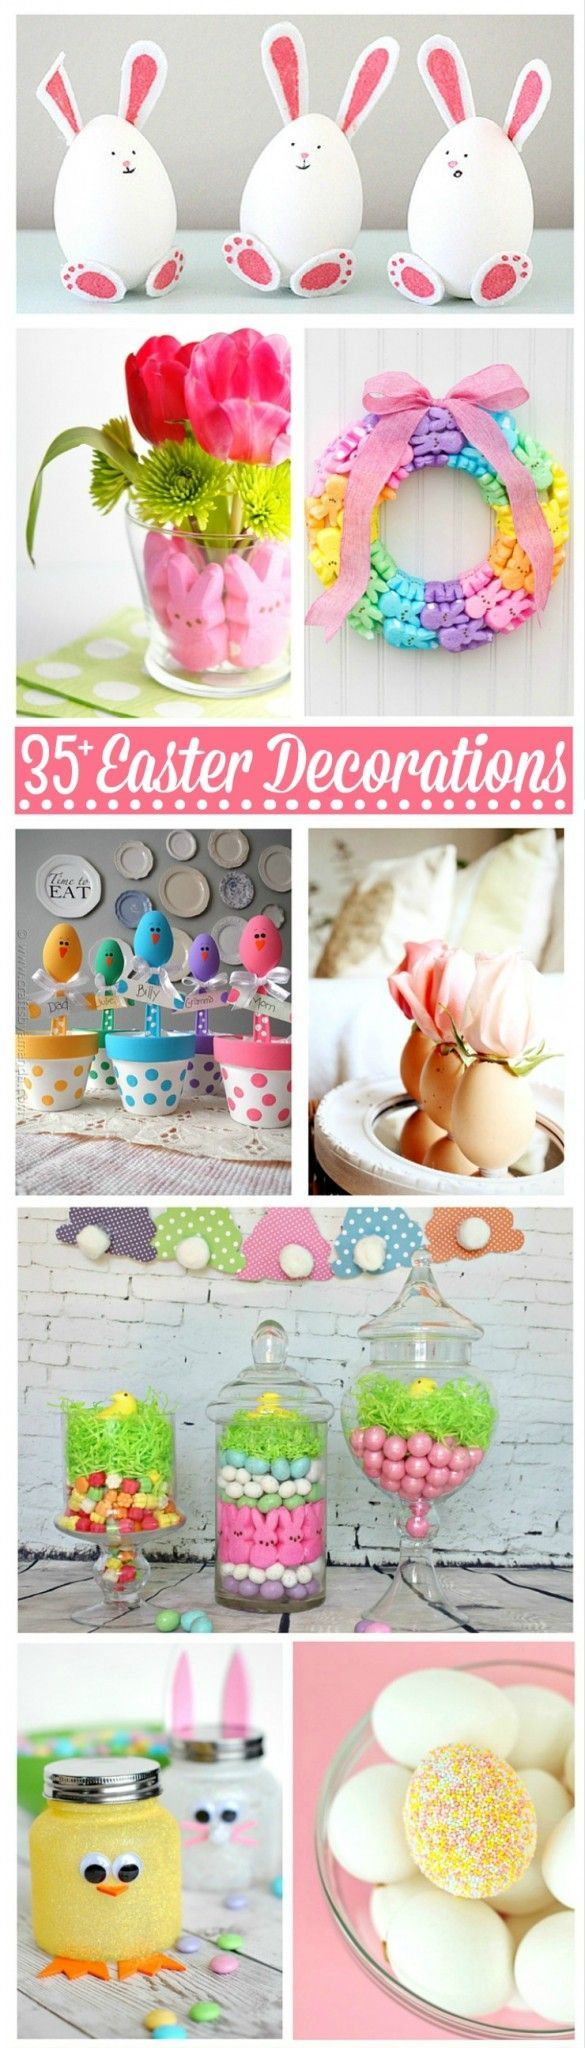 25 Best Diy Easter Decorations Ideas On Pinterest